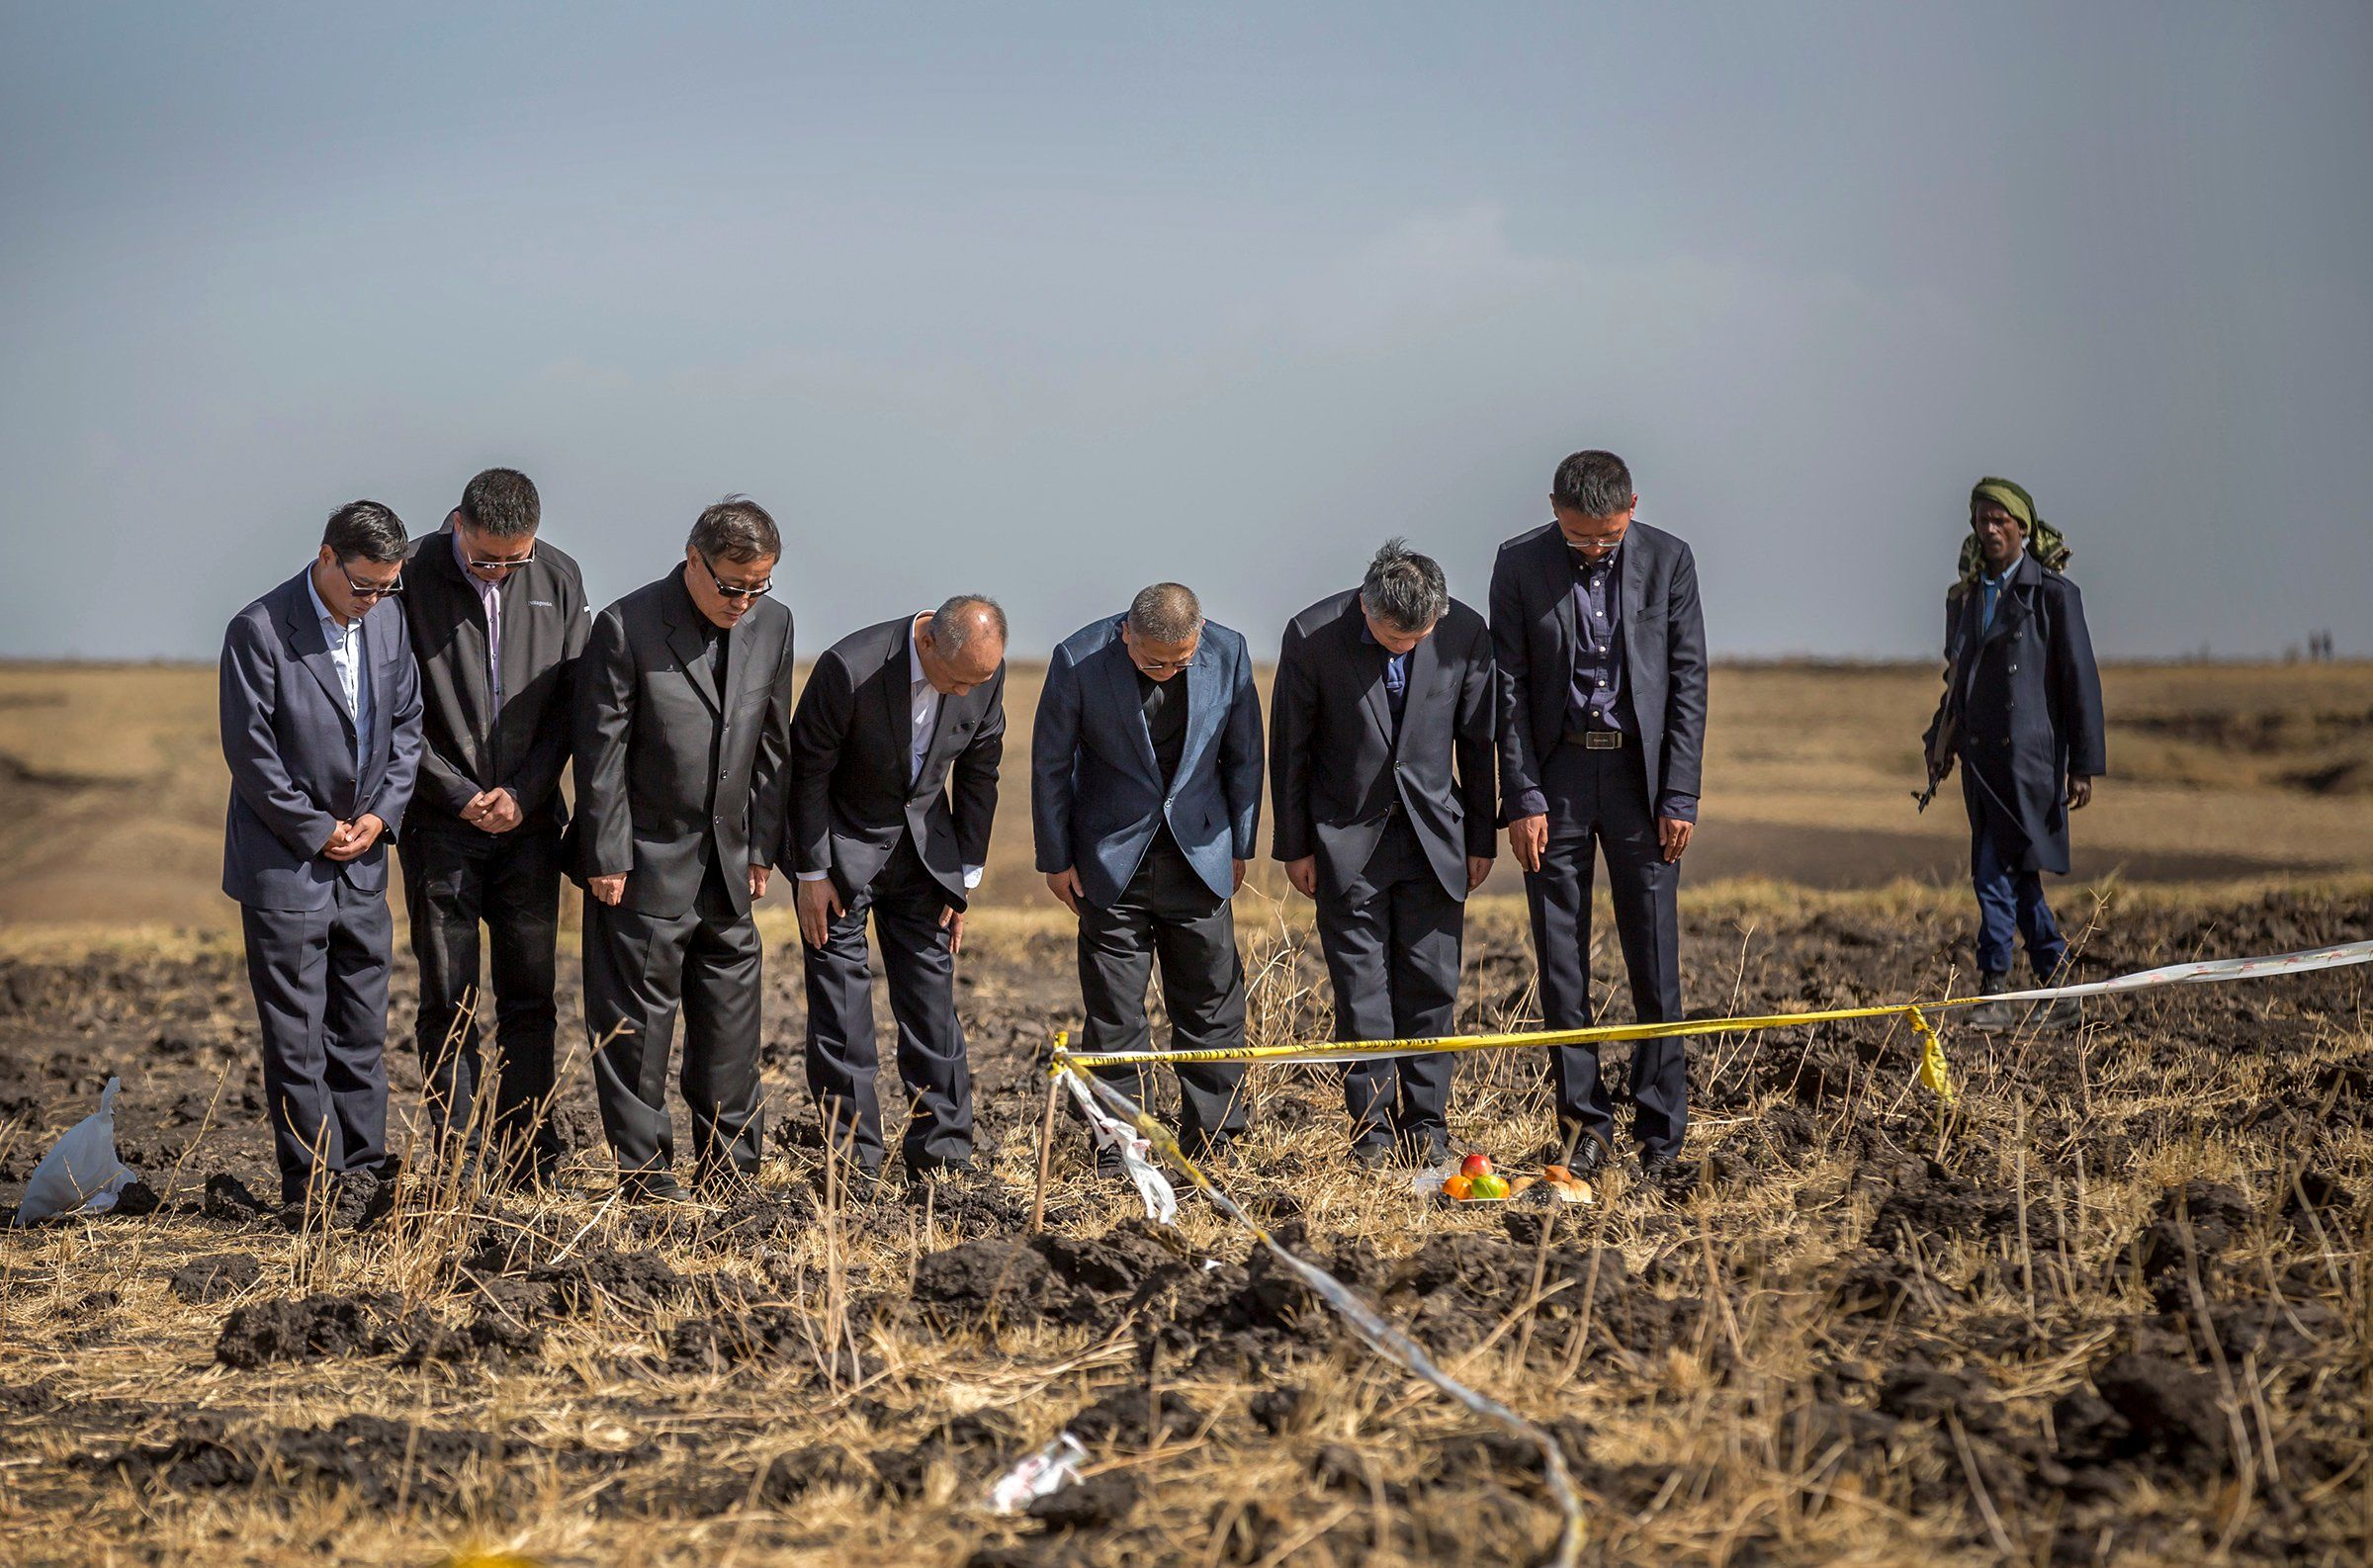 Aviation officials pray at the site of the Ethiopian Airlines crash, shortly after takeoff, near Bishoftu, southeast of Addis Ababa, on March 12. Following the crash that killed all 157 people, dozens of countries and airlines grounded Boeing's 737 Max 8.